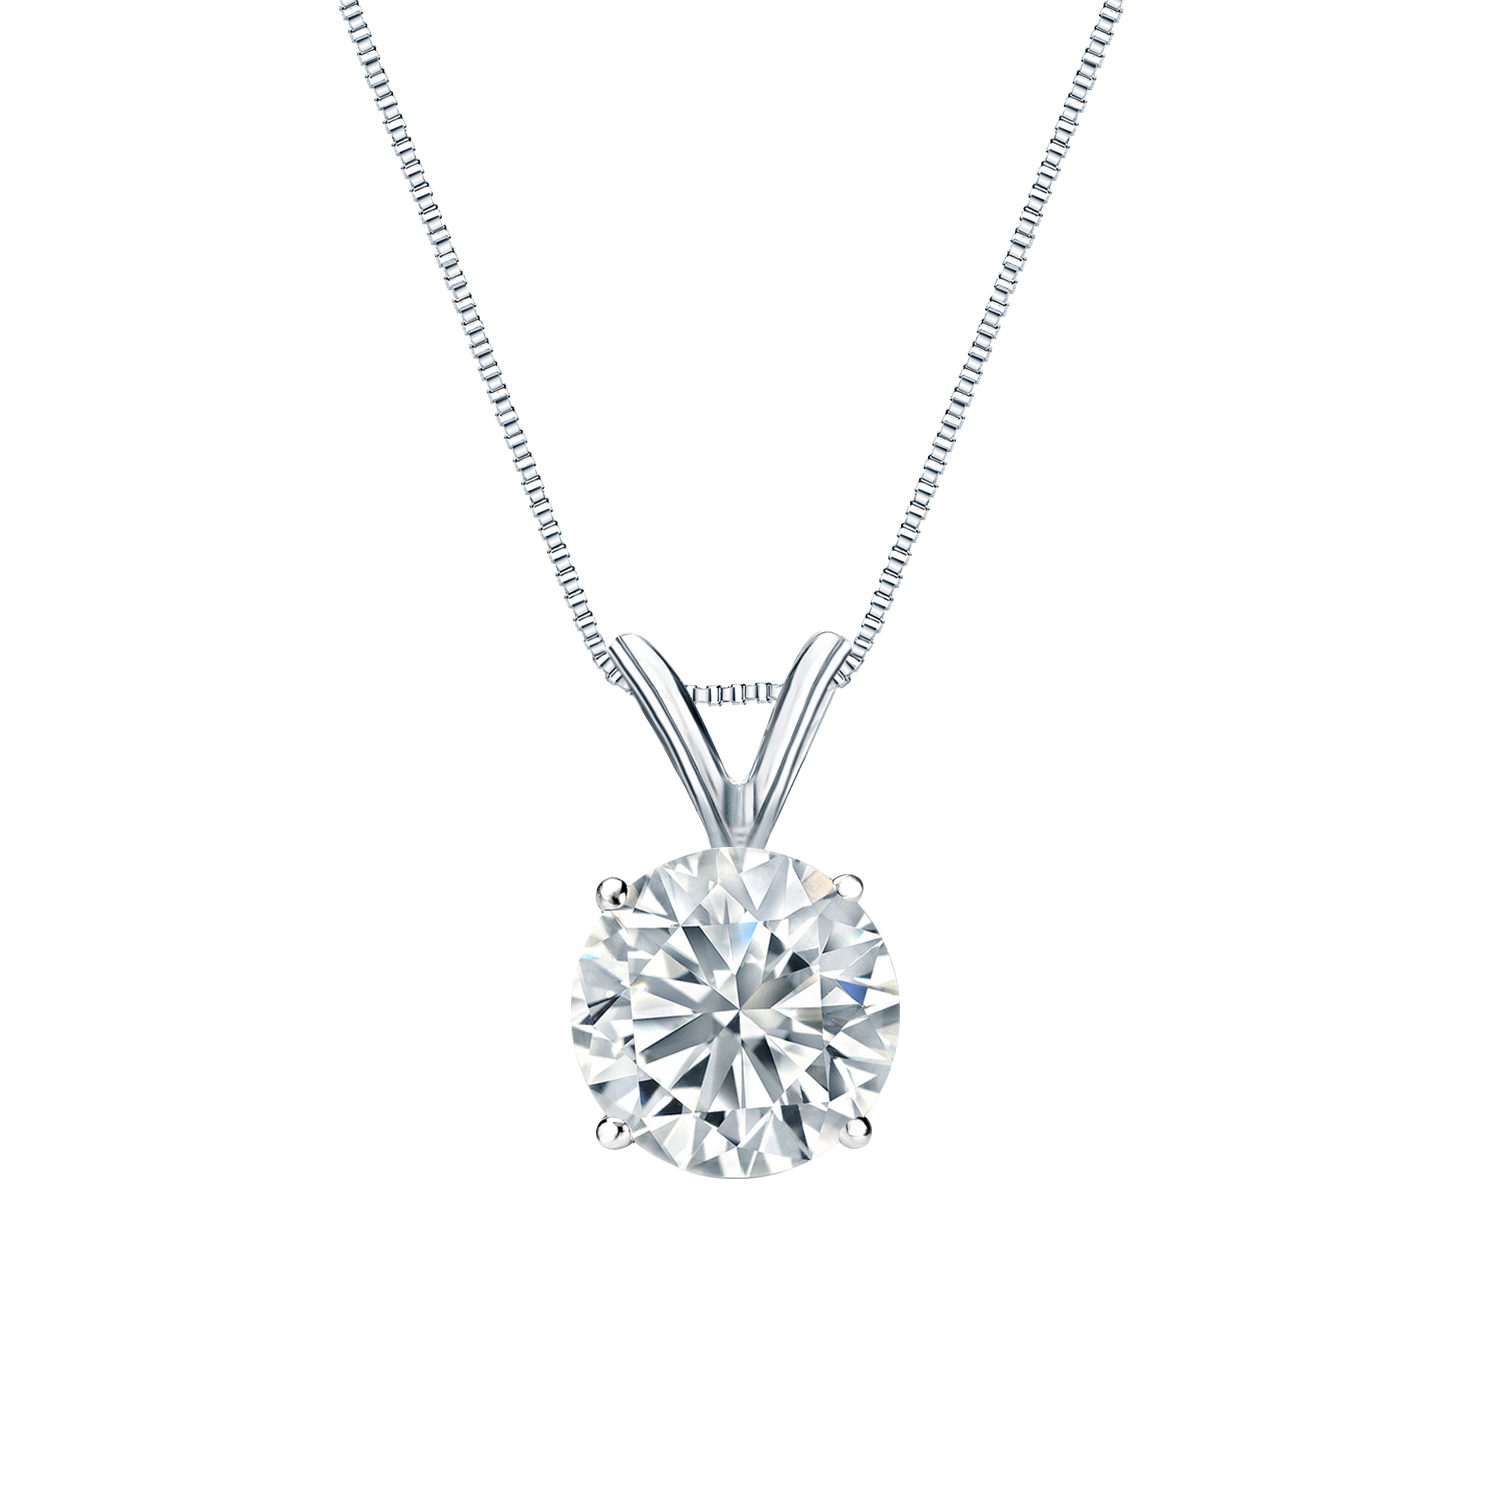 Certified 0.75 ct. tw. Round Diamond Solitaire Pendant in 14k White Gold 4-Prong Basket (I-J, I1)